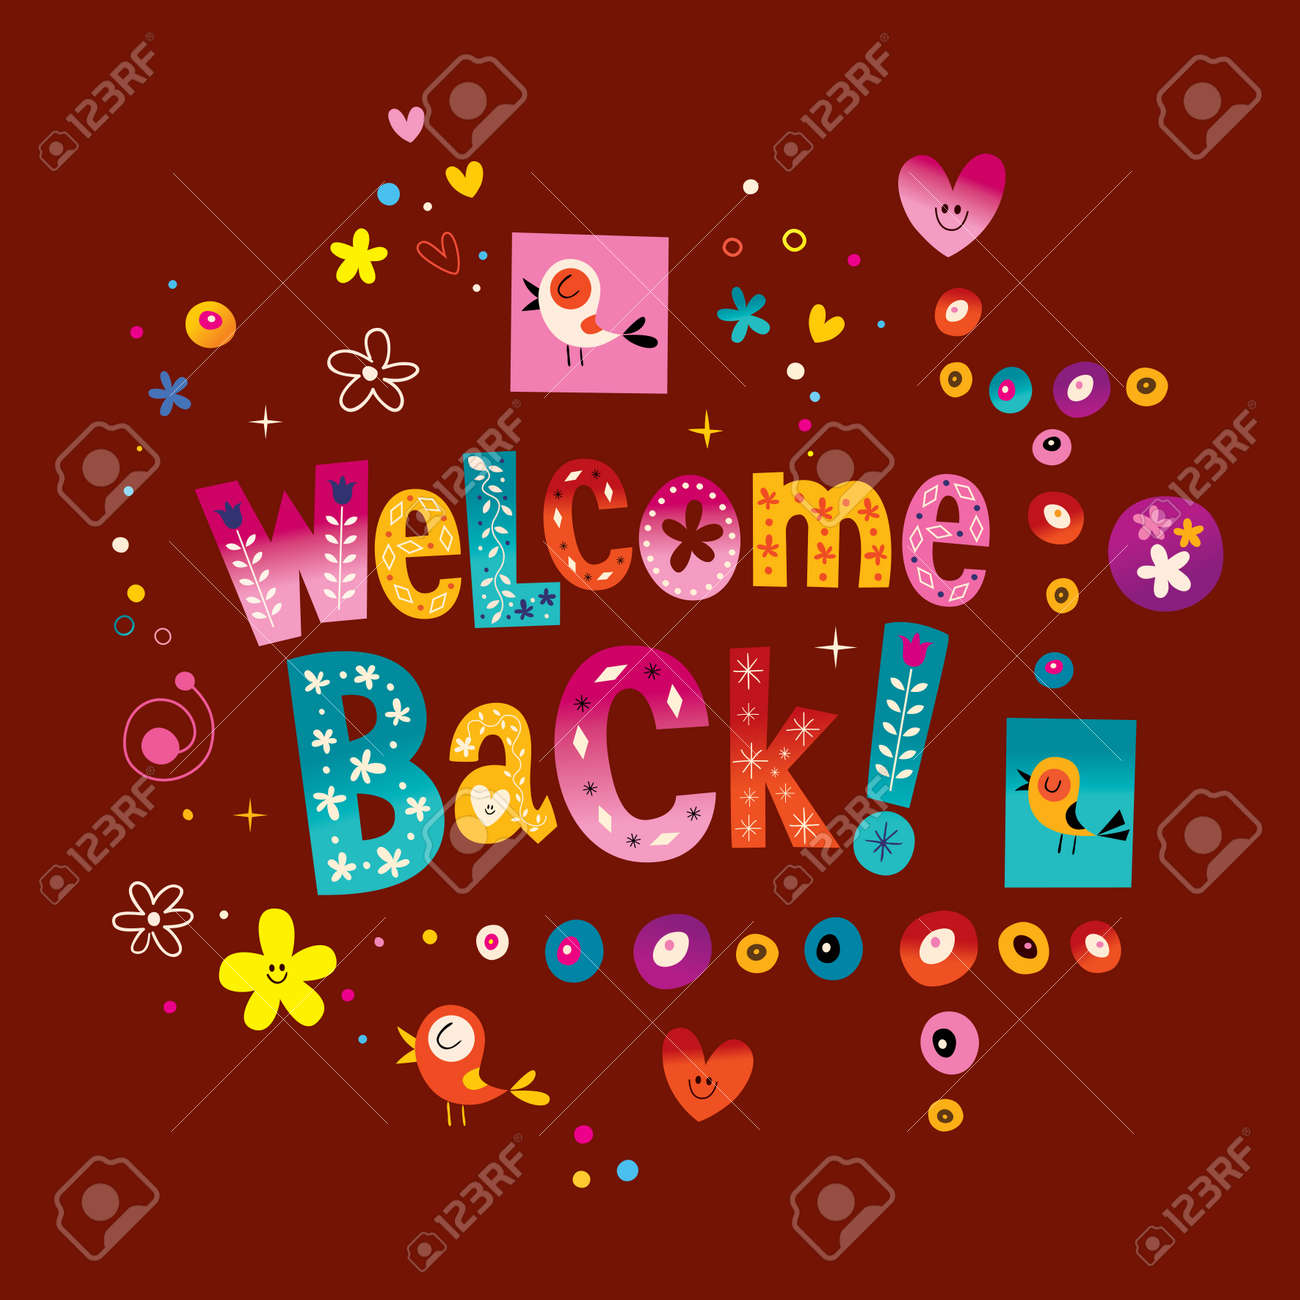 Me re presento  ahora ya con dJ!!! 54725080-welcome-back-greeting-card-Stock-Vector